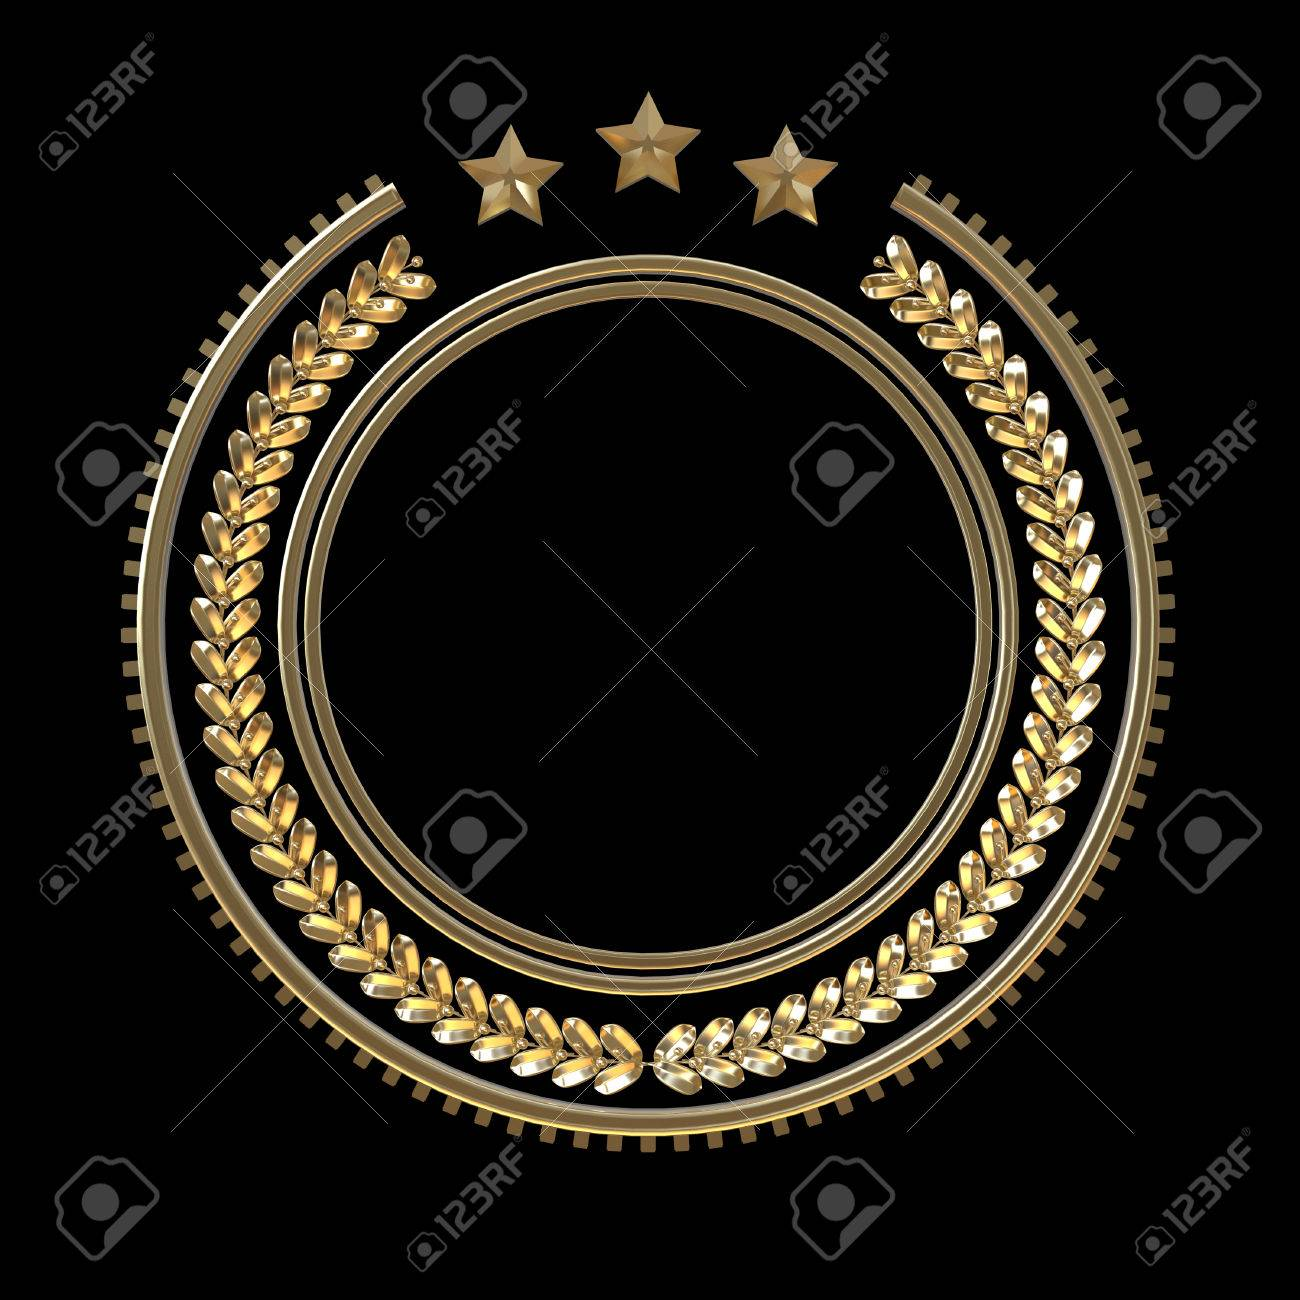 High Quality Metal Badge Template With Laurel Wreath And Stars ...